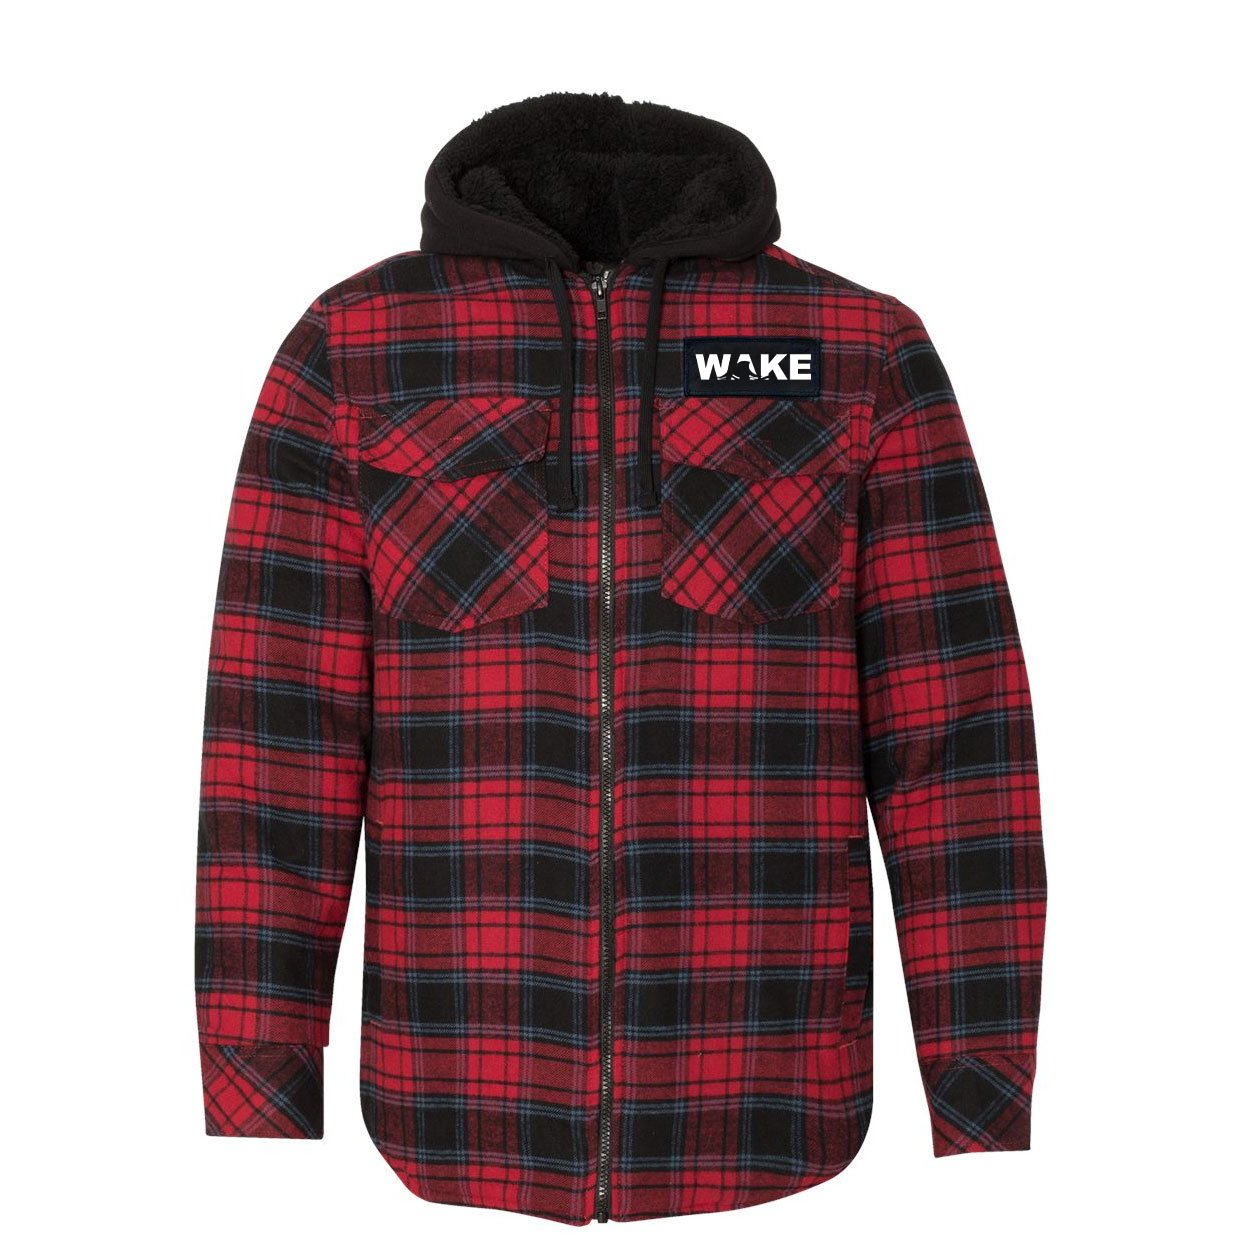 Wake Wave Logo Classic Unisex Full Zip Woven Patch Hooded Flannel Jacket Red/Black Buffalo (White Logo)